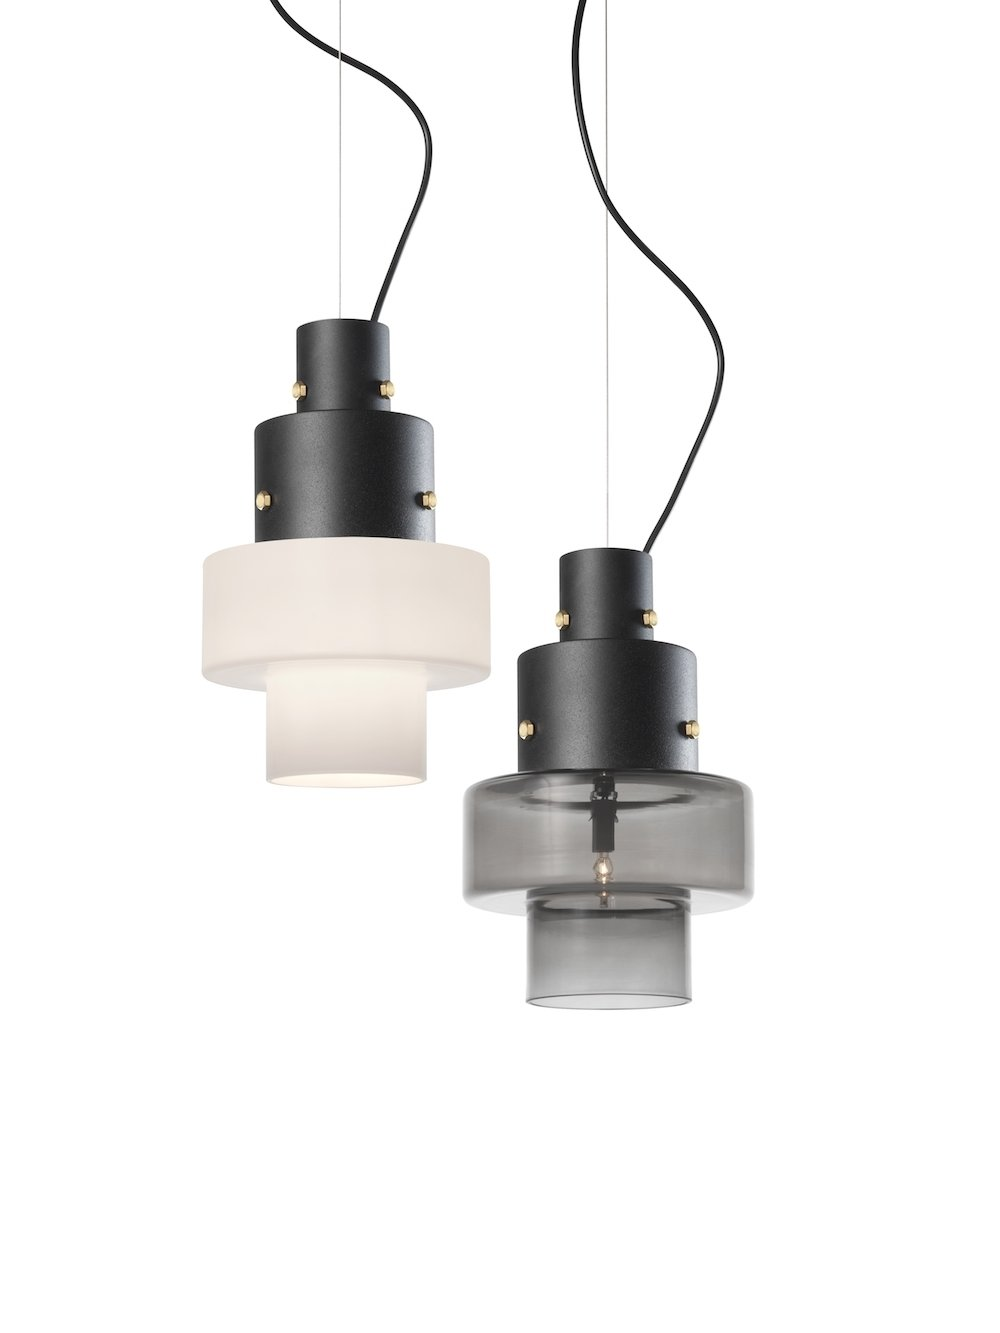 A whopping 12 new lighting designs will be shown at Foscarini, including pieces by Ludovica and Roberto Palomba, LucidiPevere, and a continuation of the company's collaboration with Diesel Living (shown here). 17 Greene Street 60+ Modern Lighting Solutions by Dwell